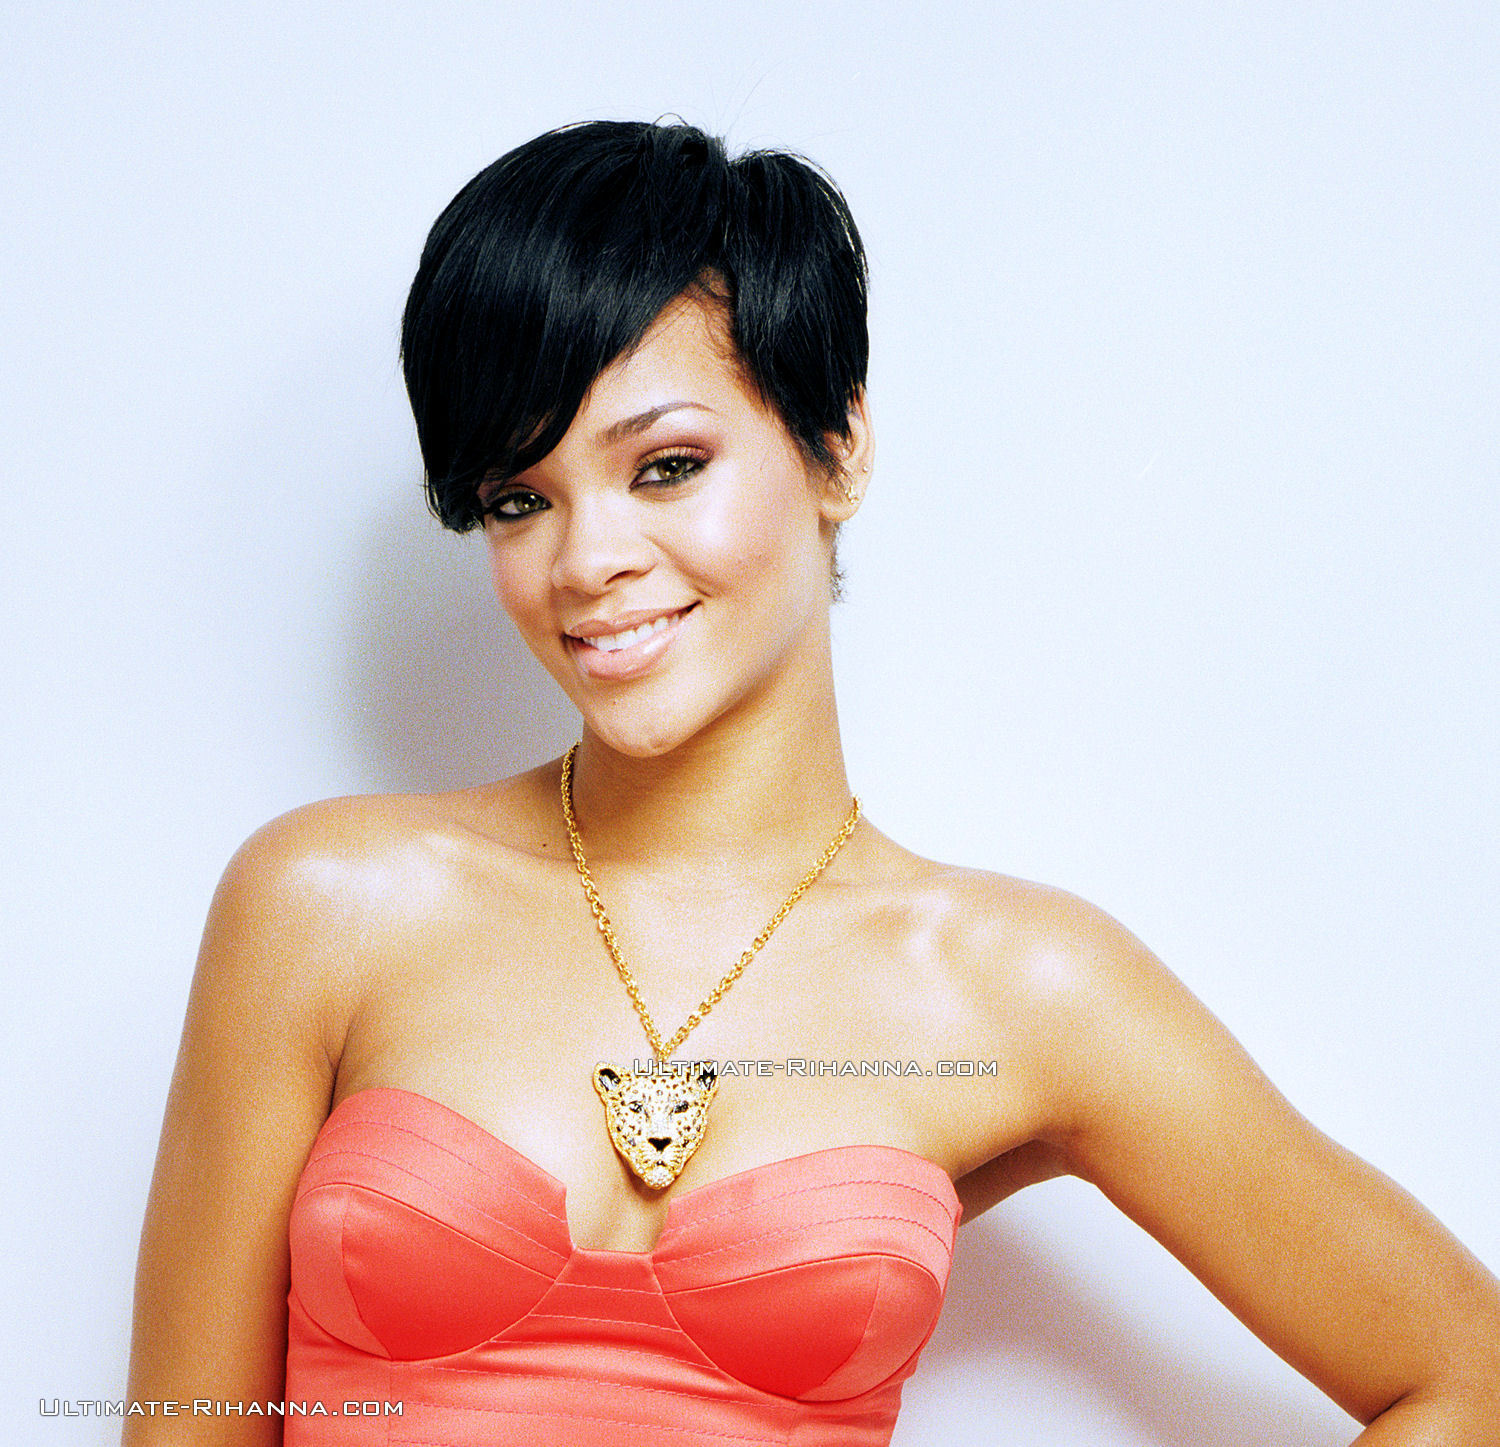 Rihanna News And Photos: Do U Like Rihanna's New Haircut???